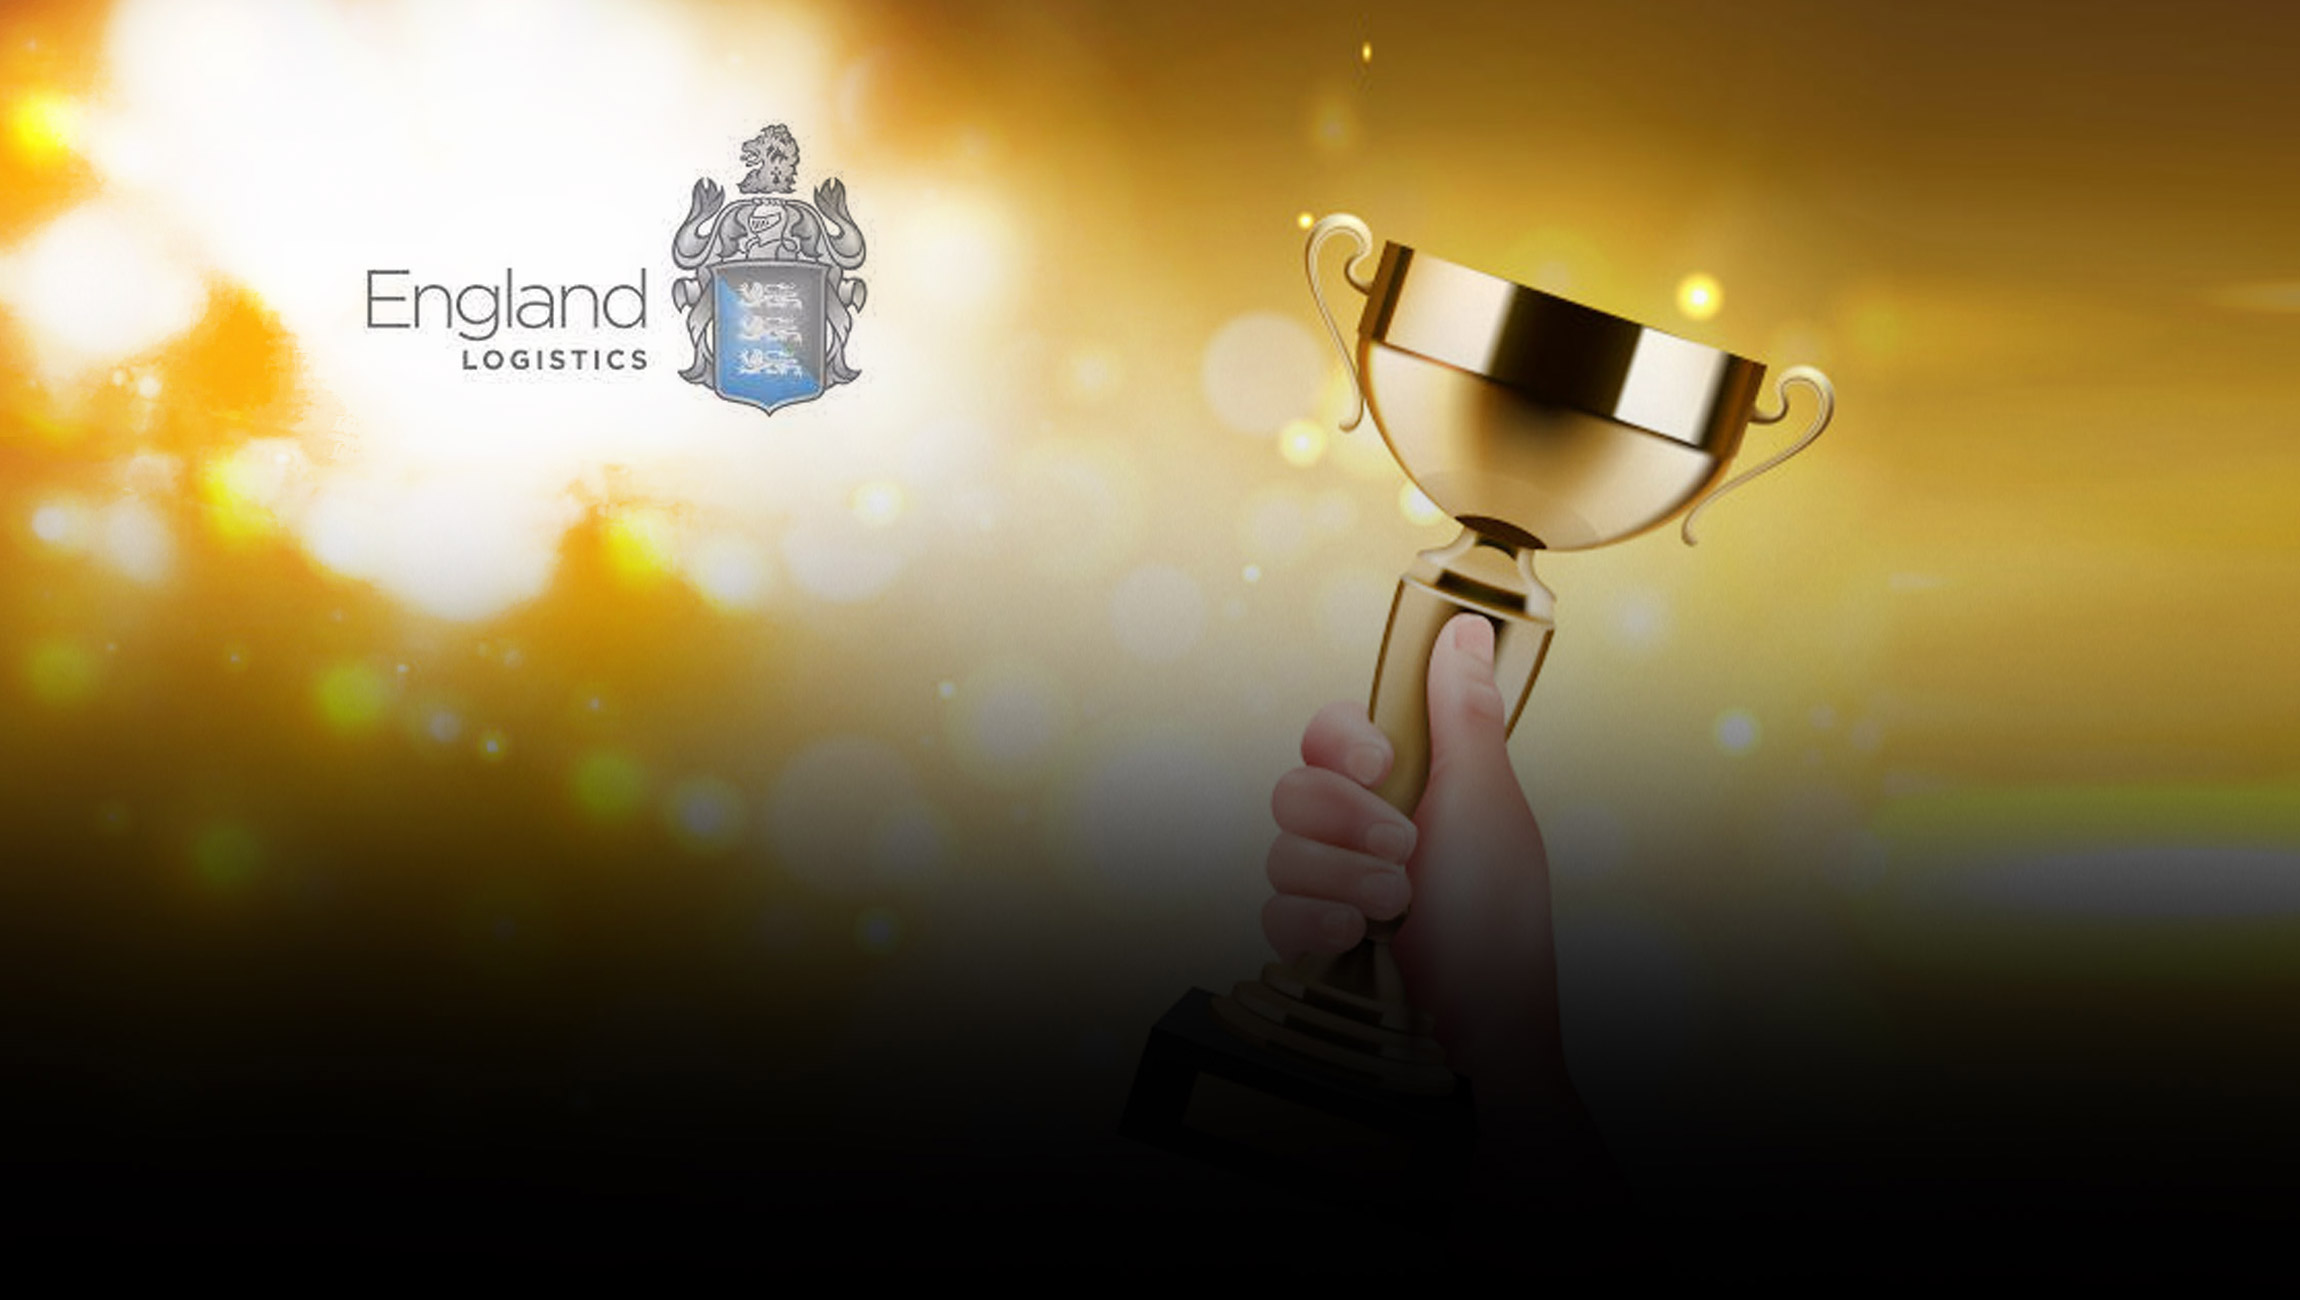 England-Logistics-Receives-Stevie®-Award-for-Achievement-in-Customer-Satisfaction